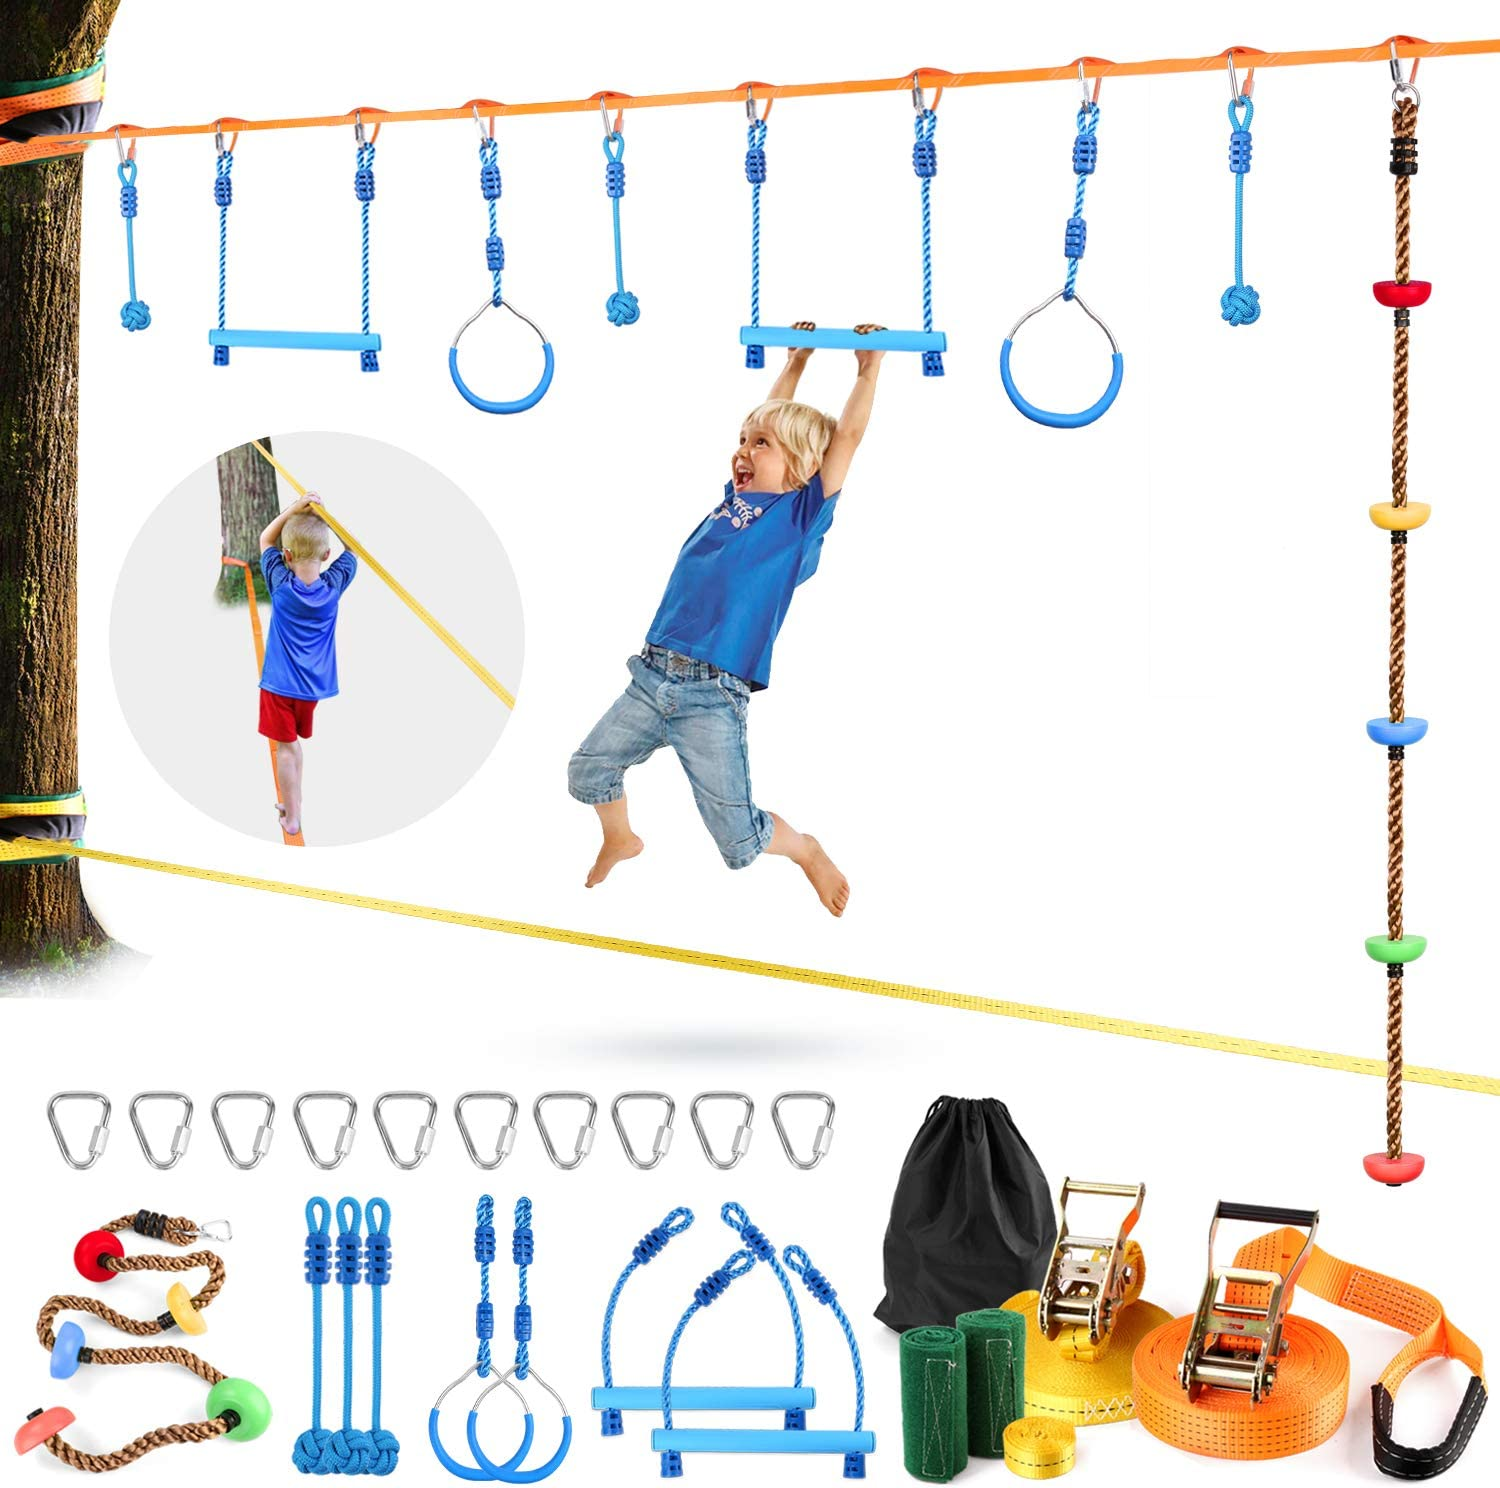 Odoland 50ft Slackline Ninja Line Obstacle Course Kit for Kid Include Climb Rope, 2 Swing Bar, 3 Swing Ball, 2 Swing Ring and Foot Balance Rope, Balance Sports Suit for Children on Tree and Backyard